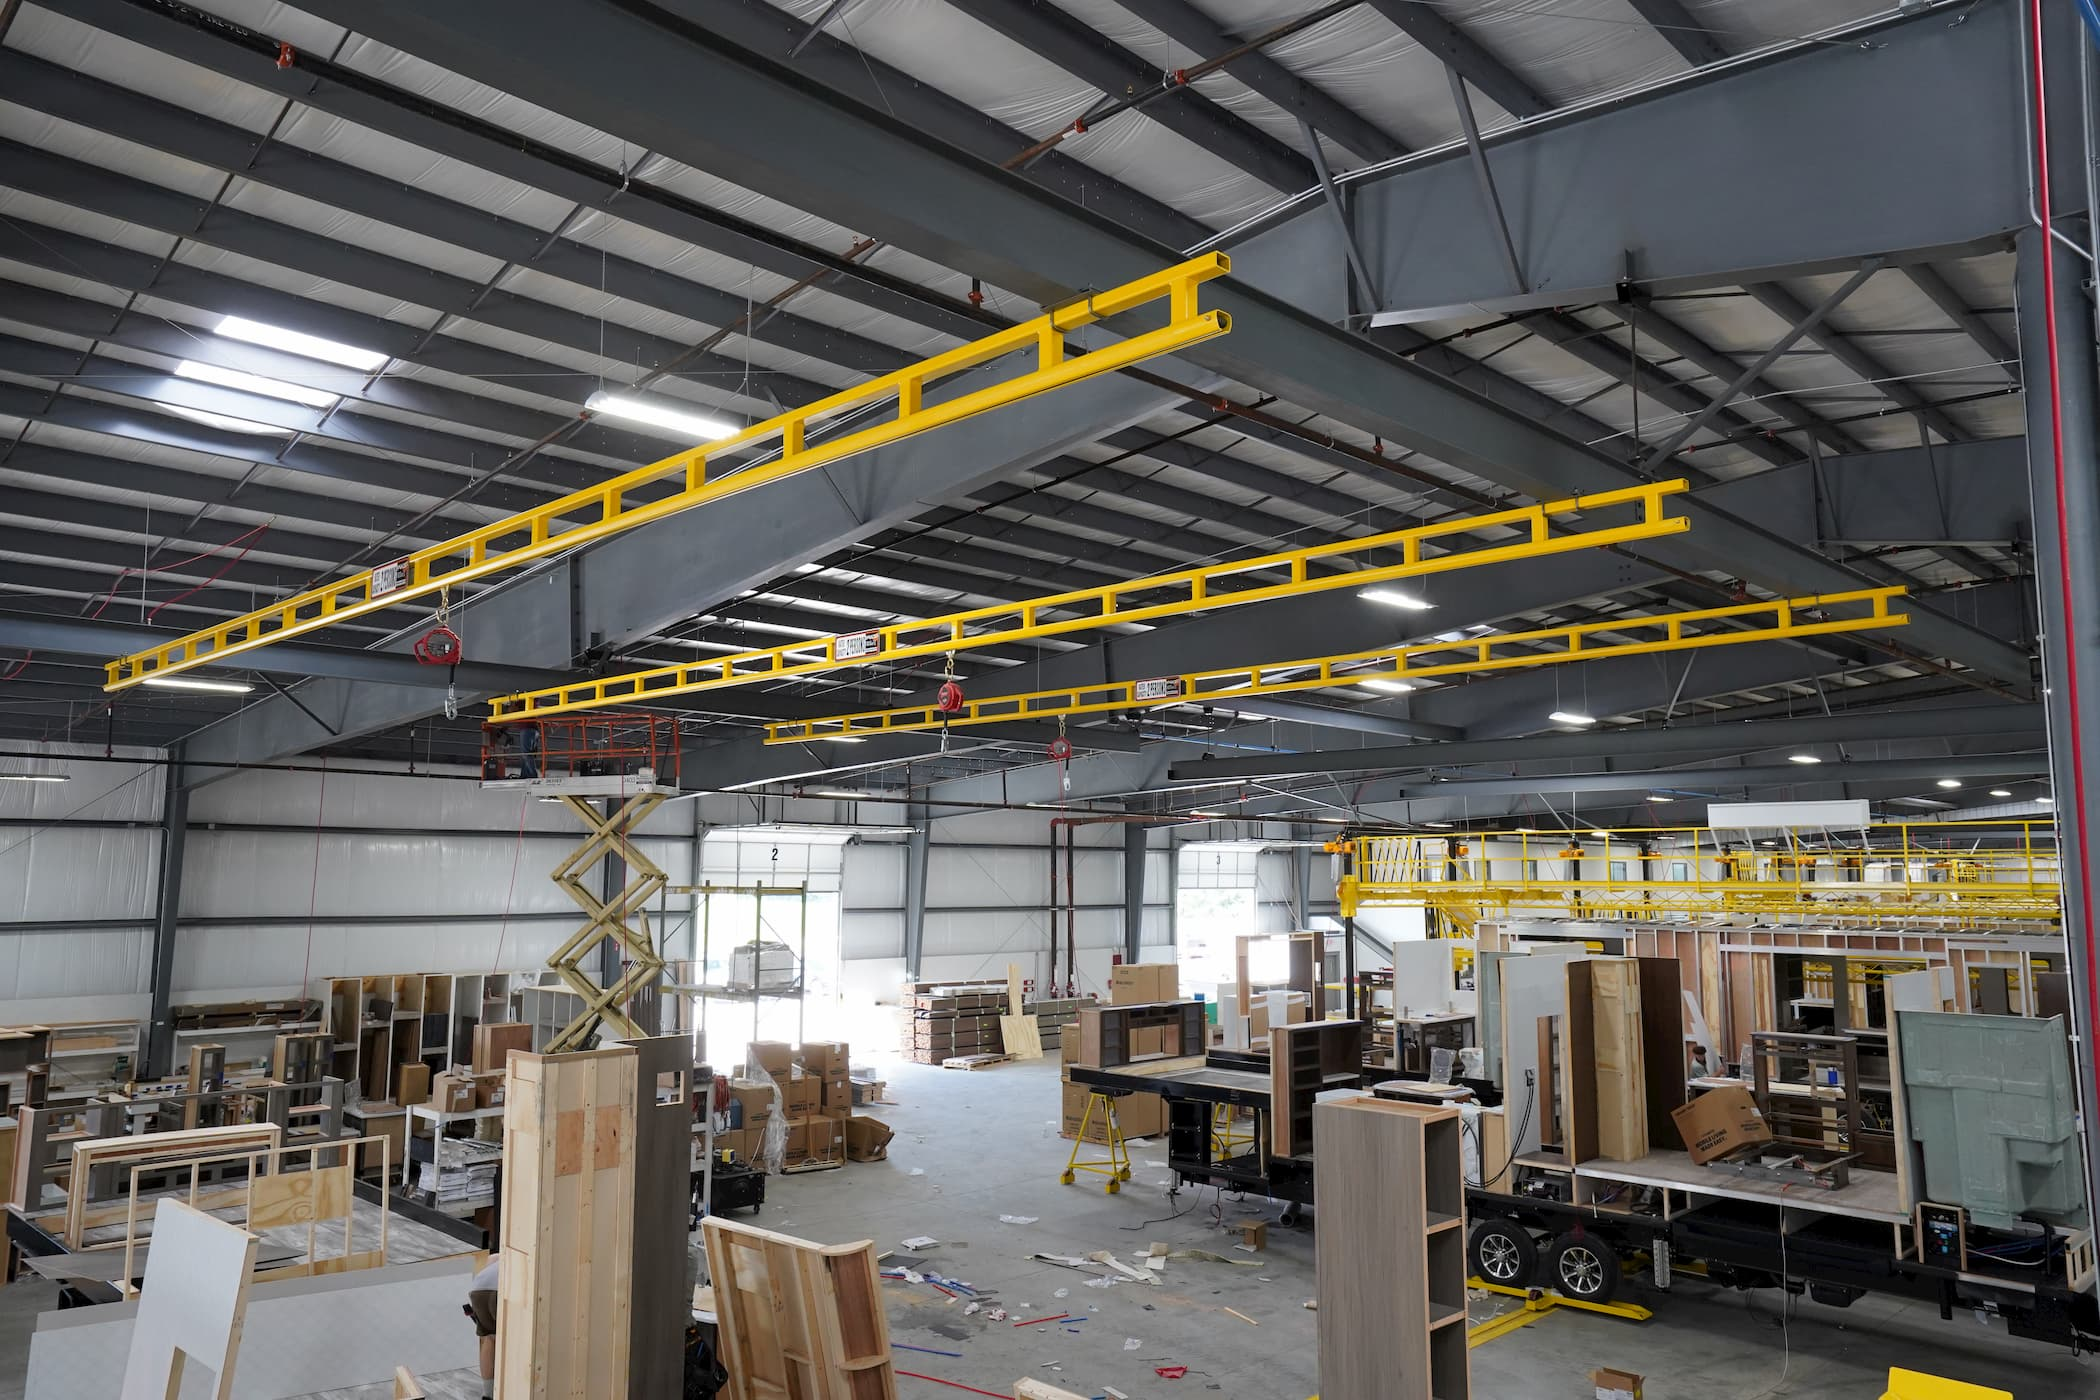 Rigid Enclosed Track Fall Protection